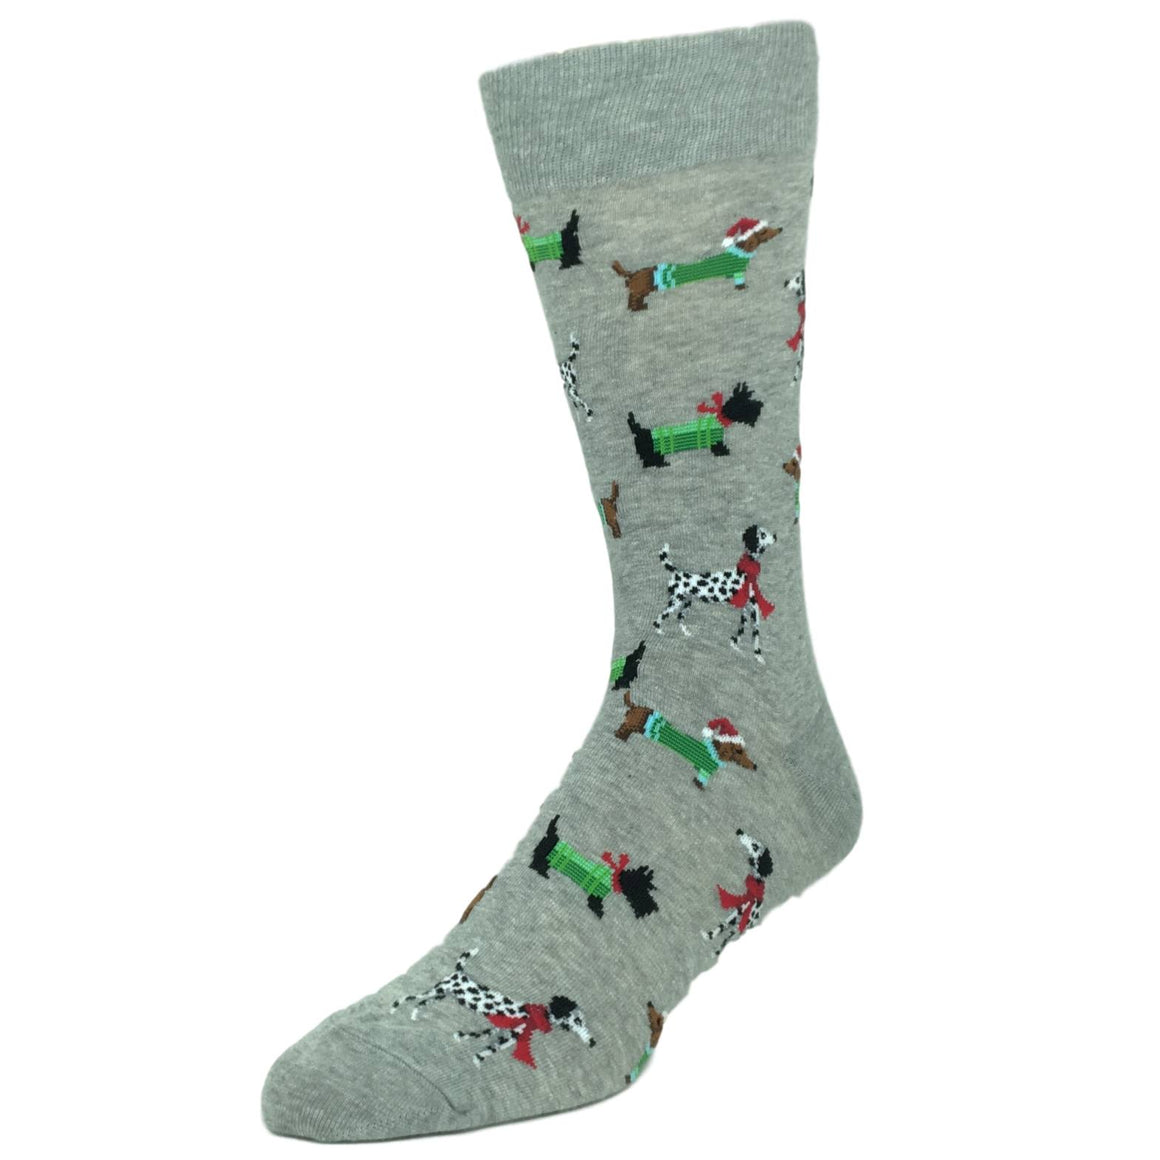 Doggies For Christmas Socks in Grey by Hot Sox - The Sock Spot